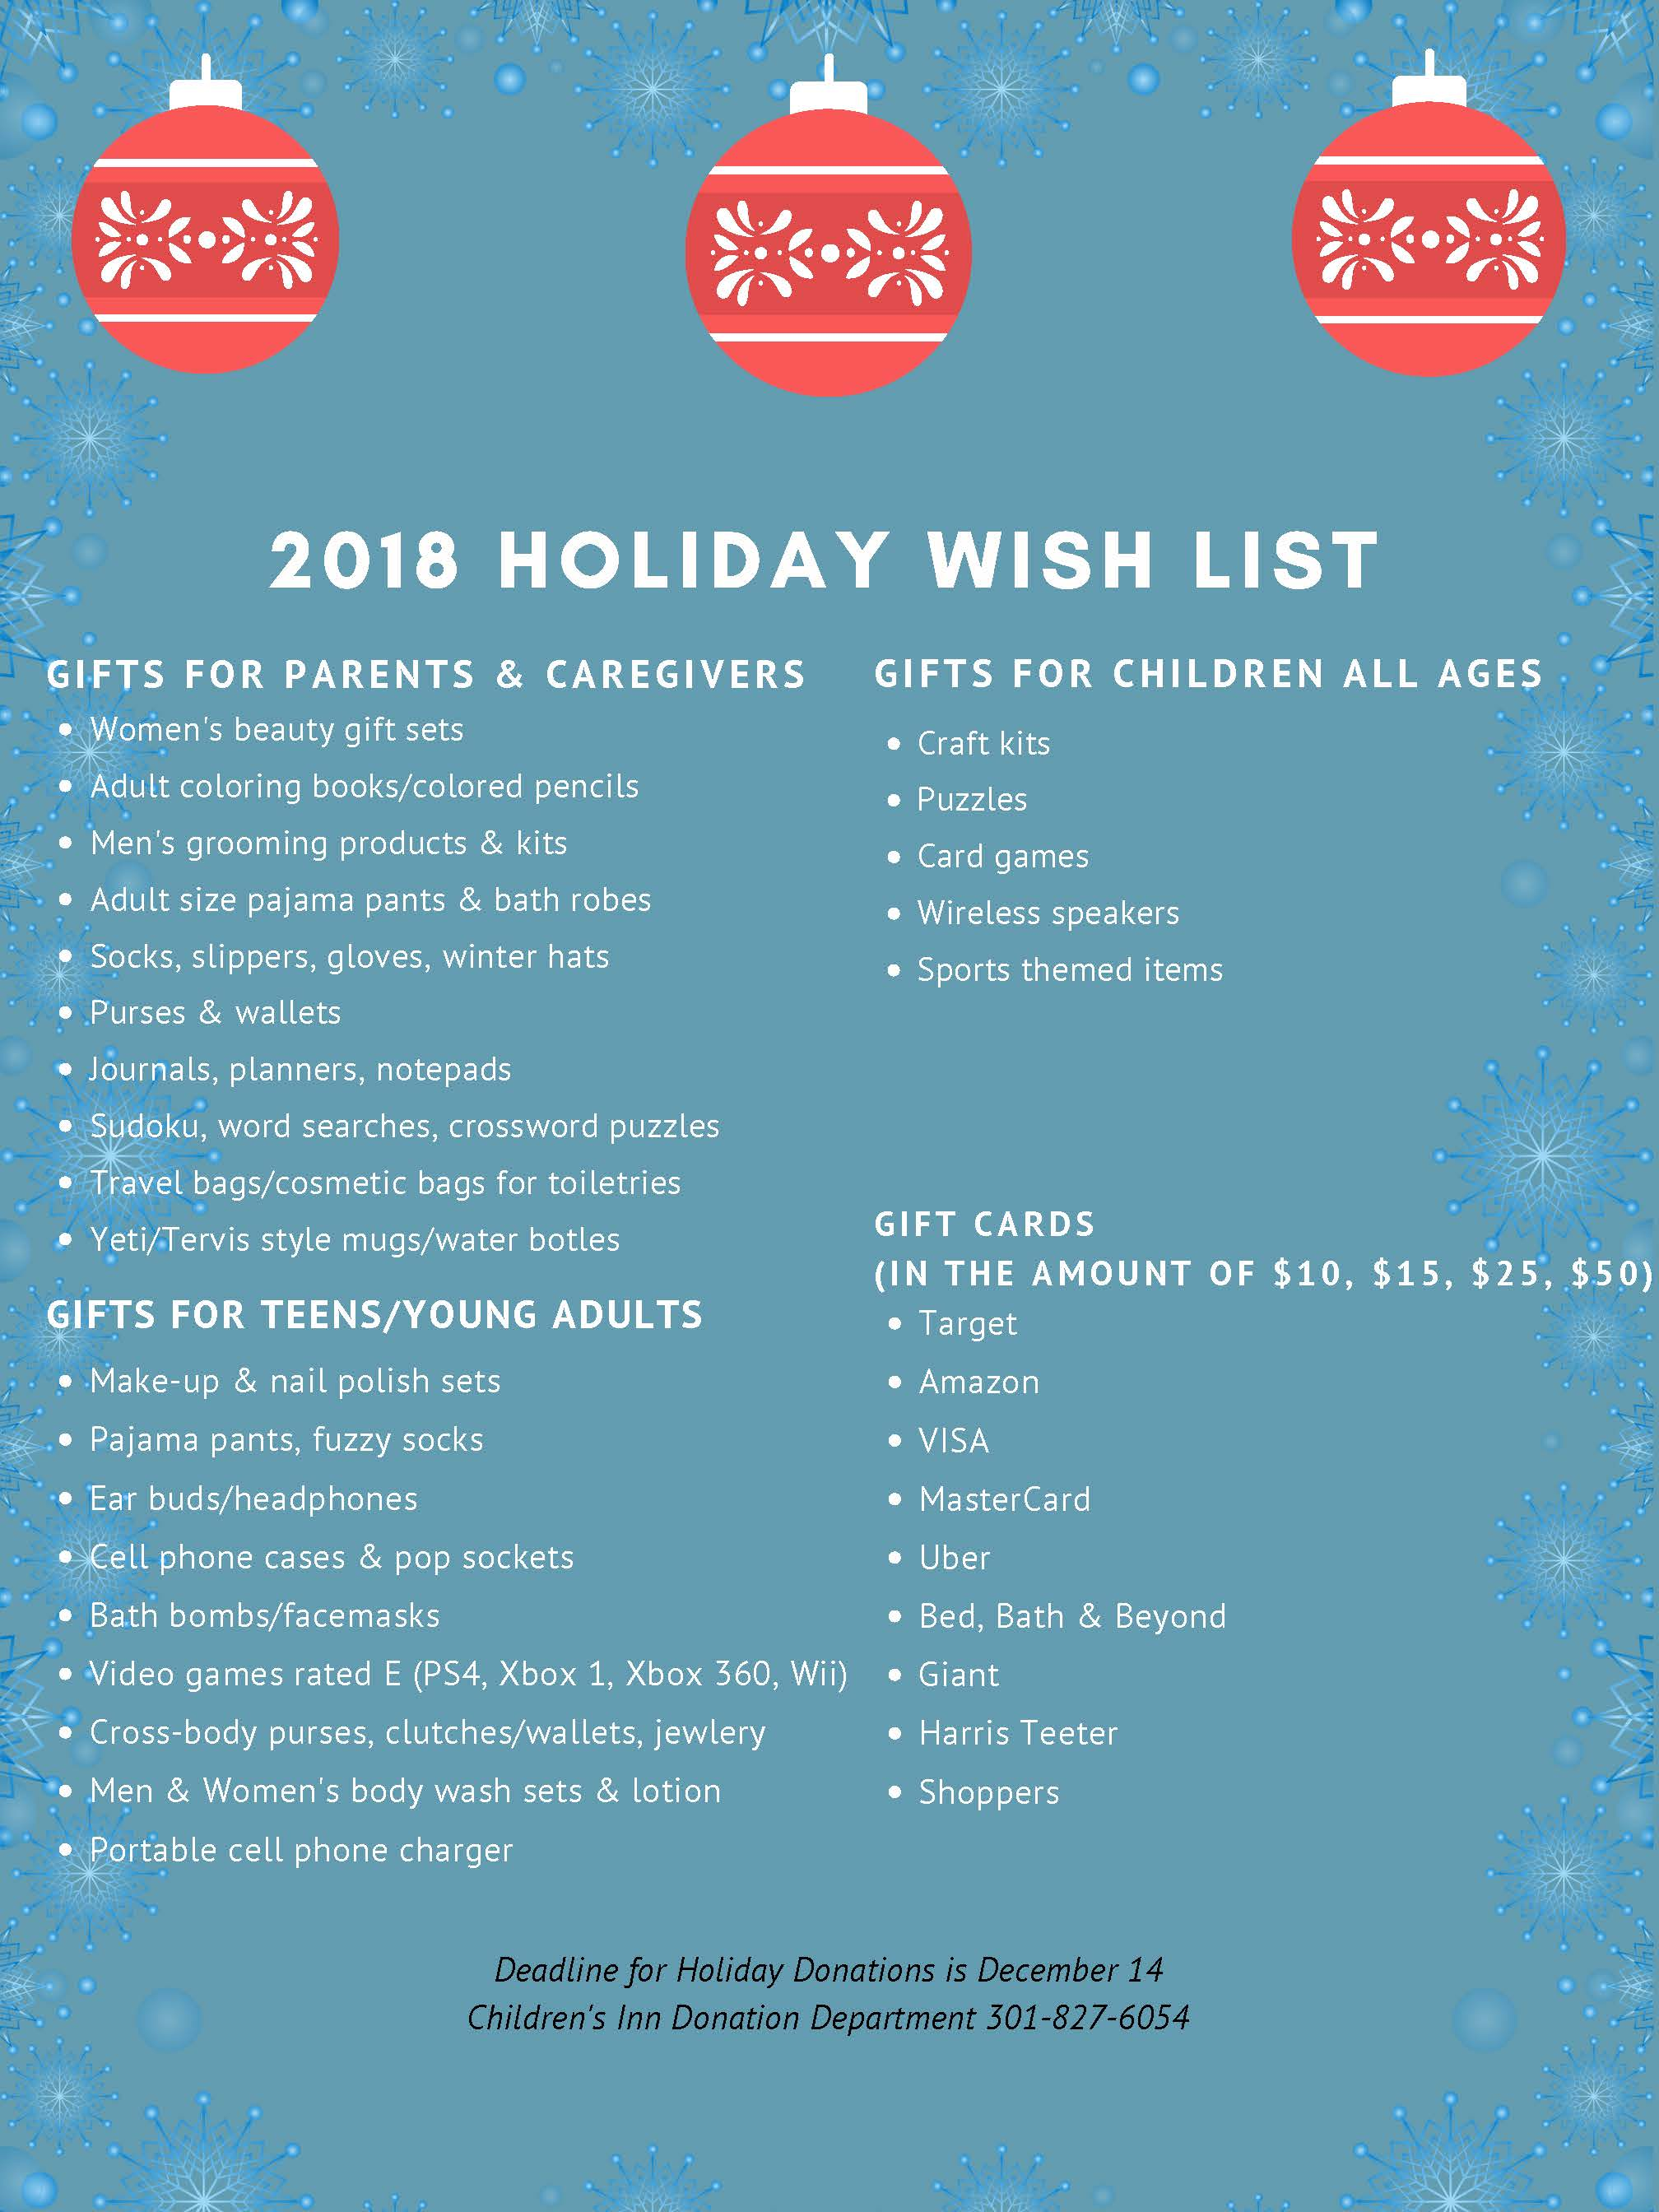 Holiday Wish List The Childrens Inn At NIH